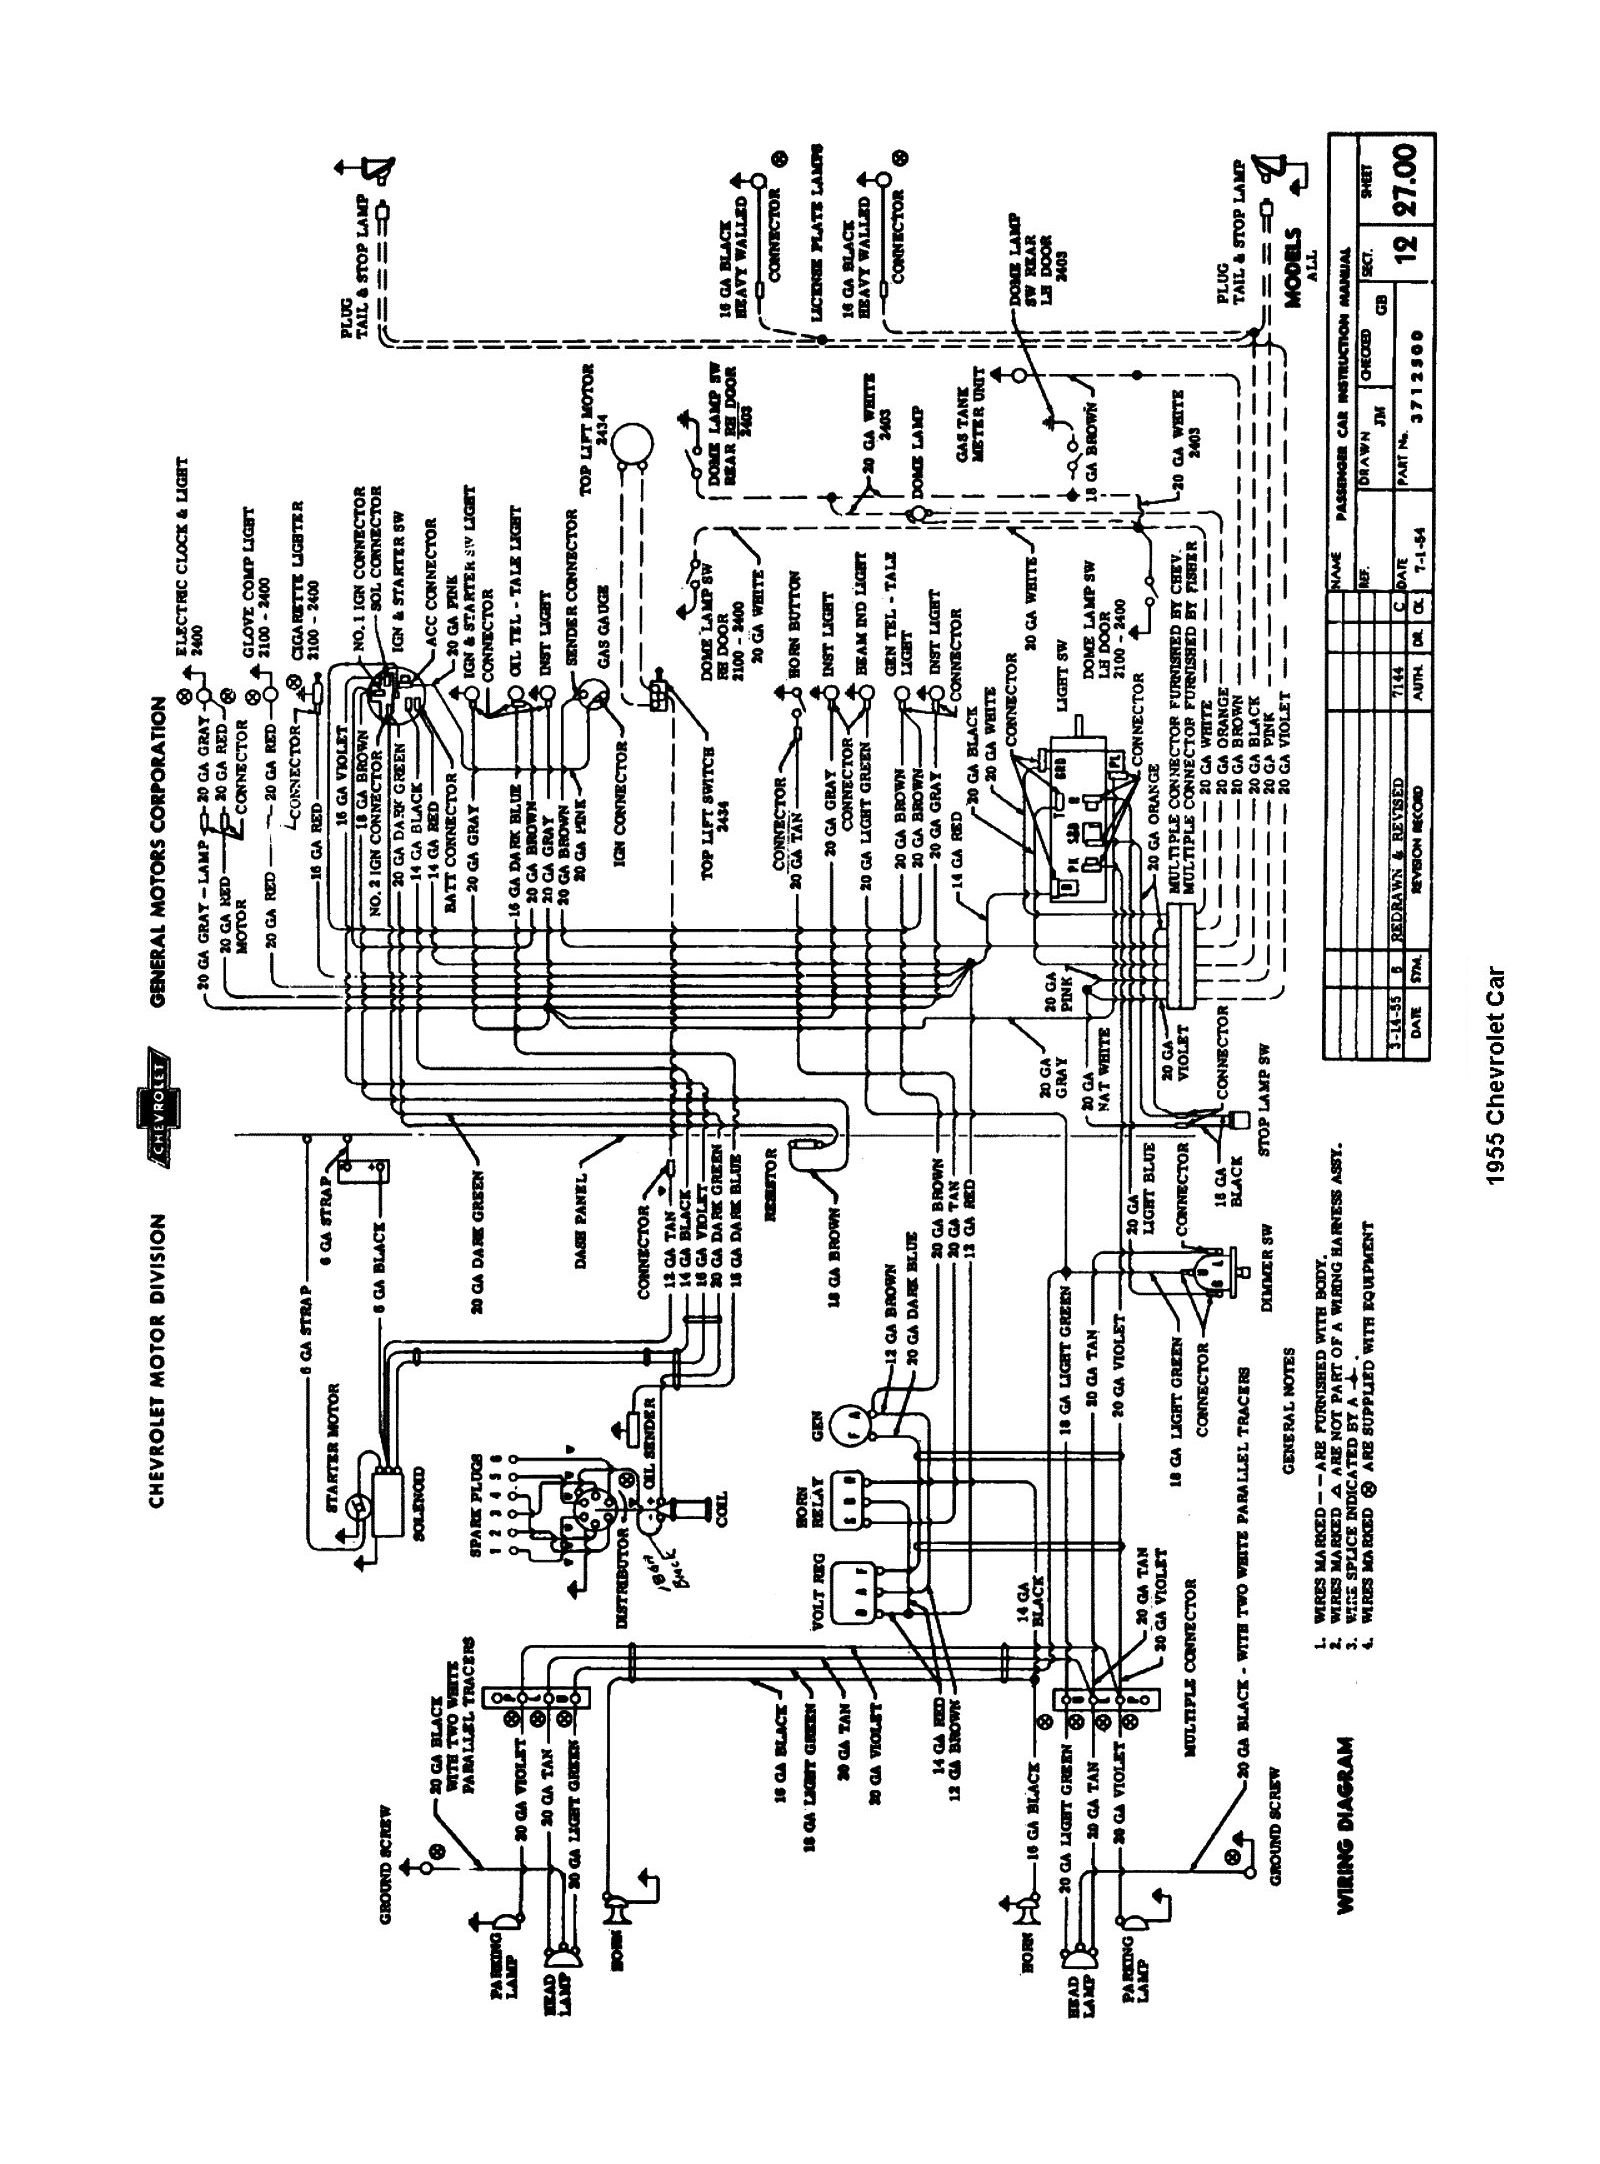 1955, 1955 Car Wiring Diagrams · 1955 Passenger Car Wiring ...